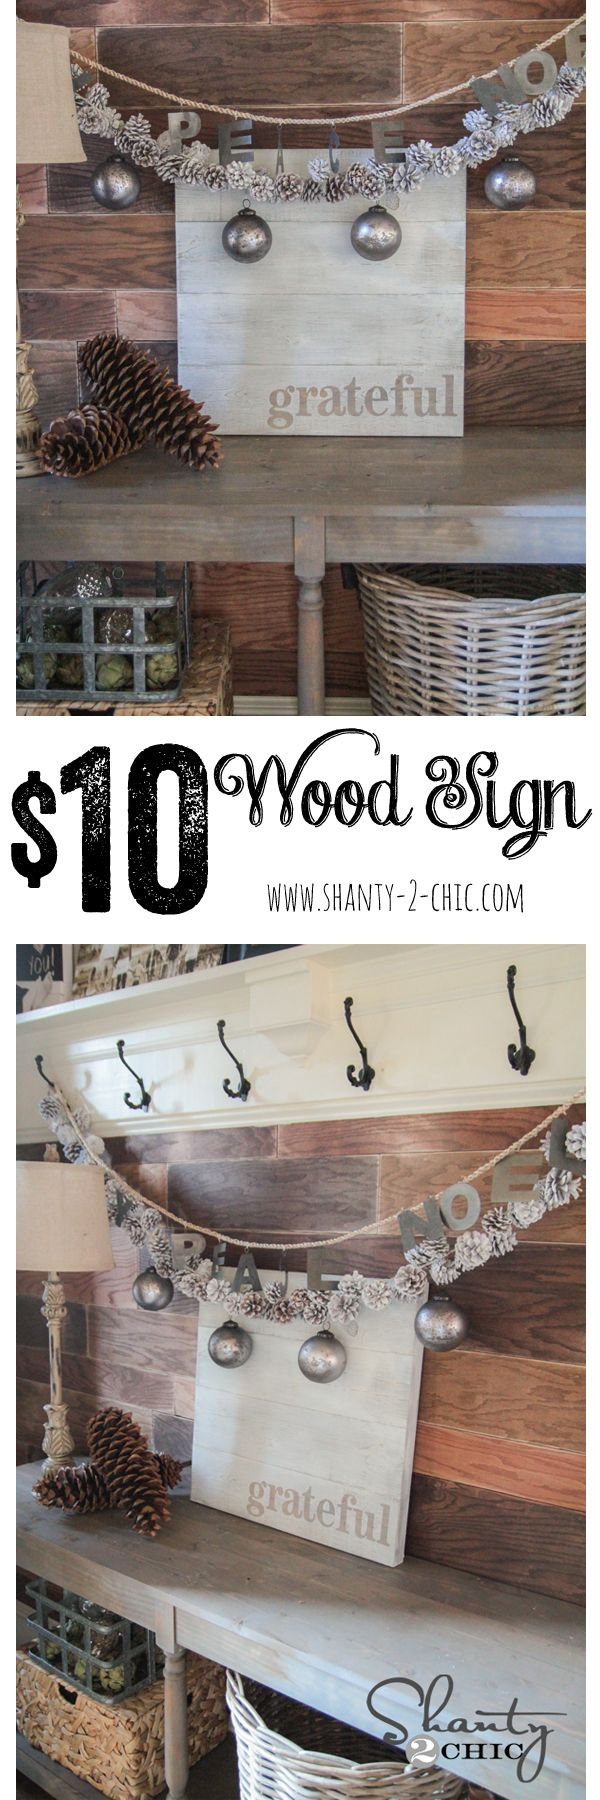 Shanty 2 Chic Coffee Table 420 Best Ideas About So Copying This On Pinterest Free